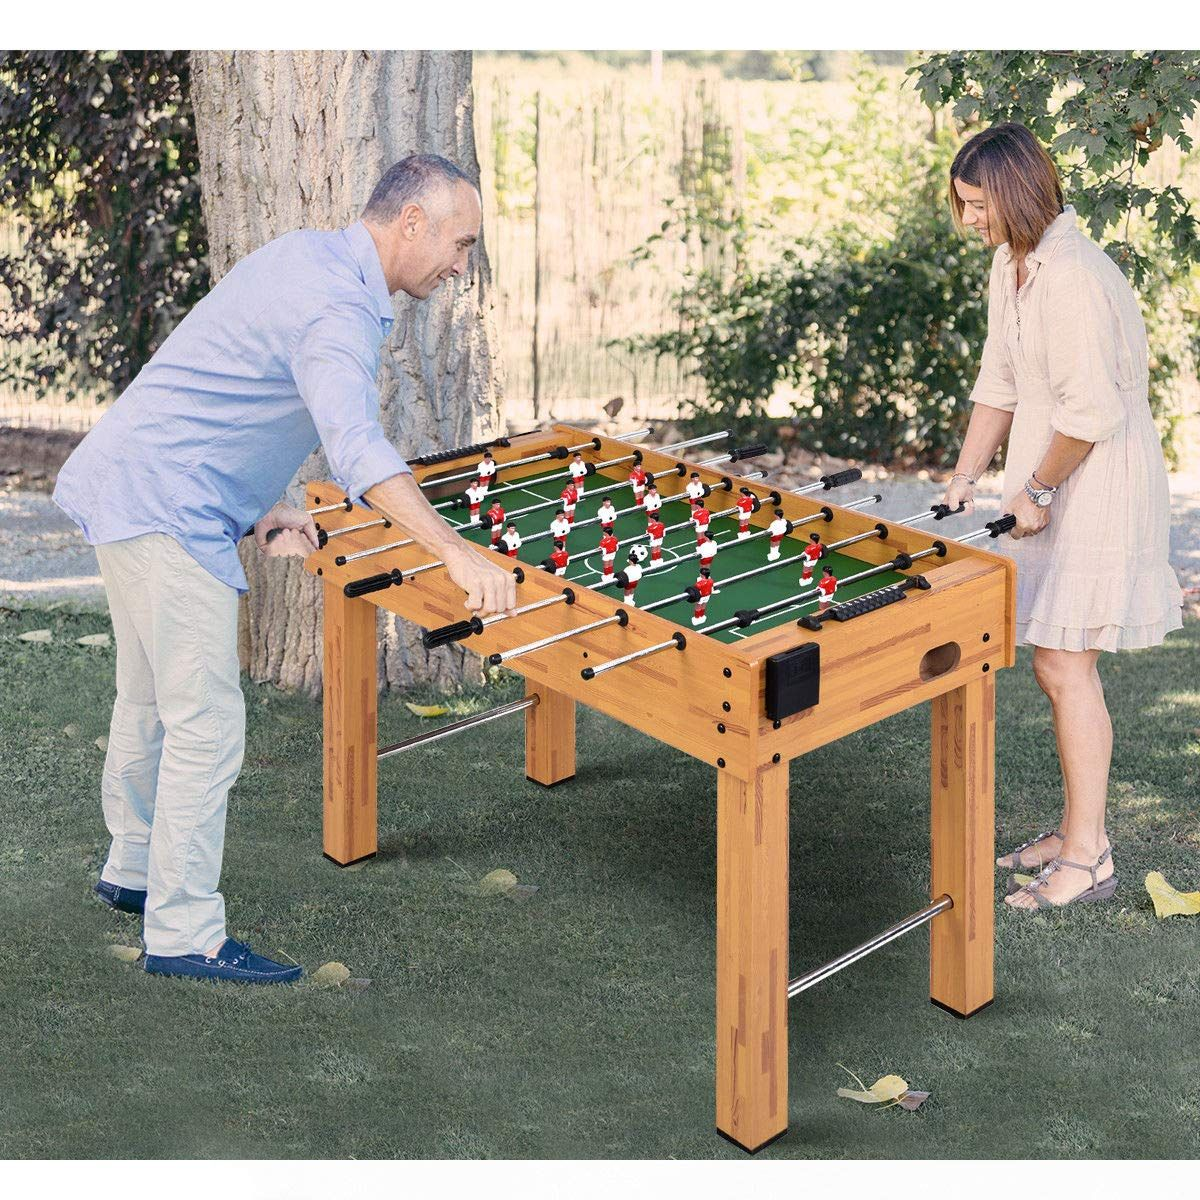 Do You Want To Enjoy The Fun Of Table Football This Is An Indoor